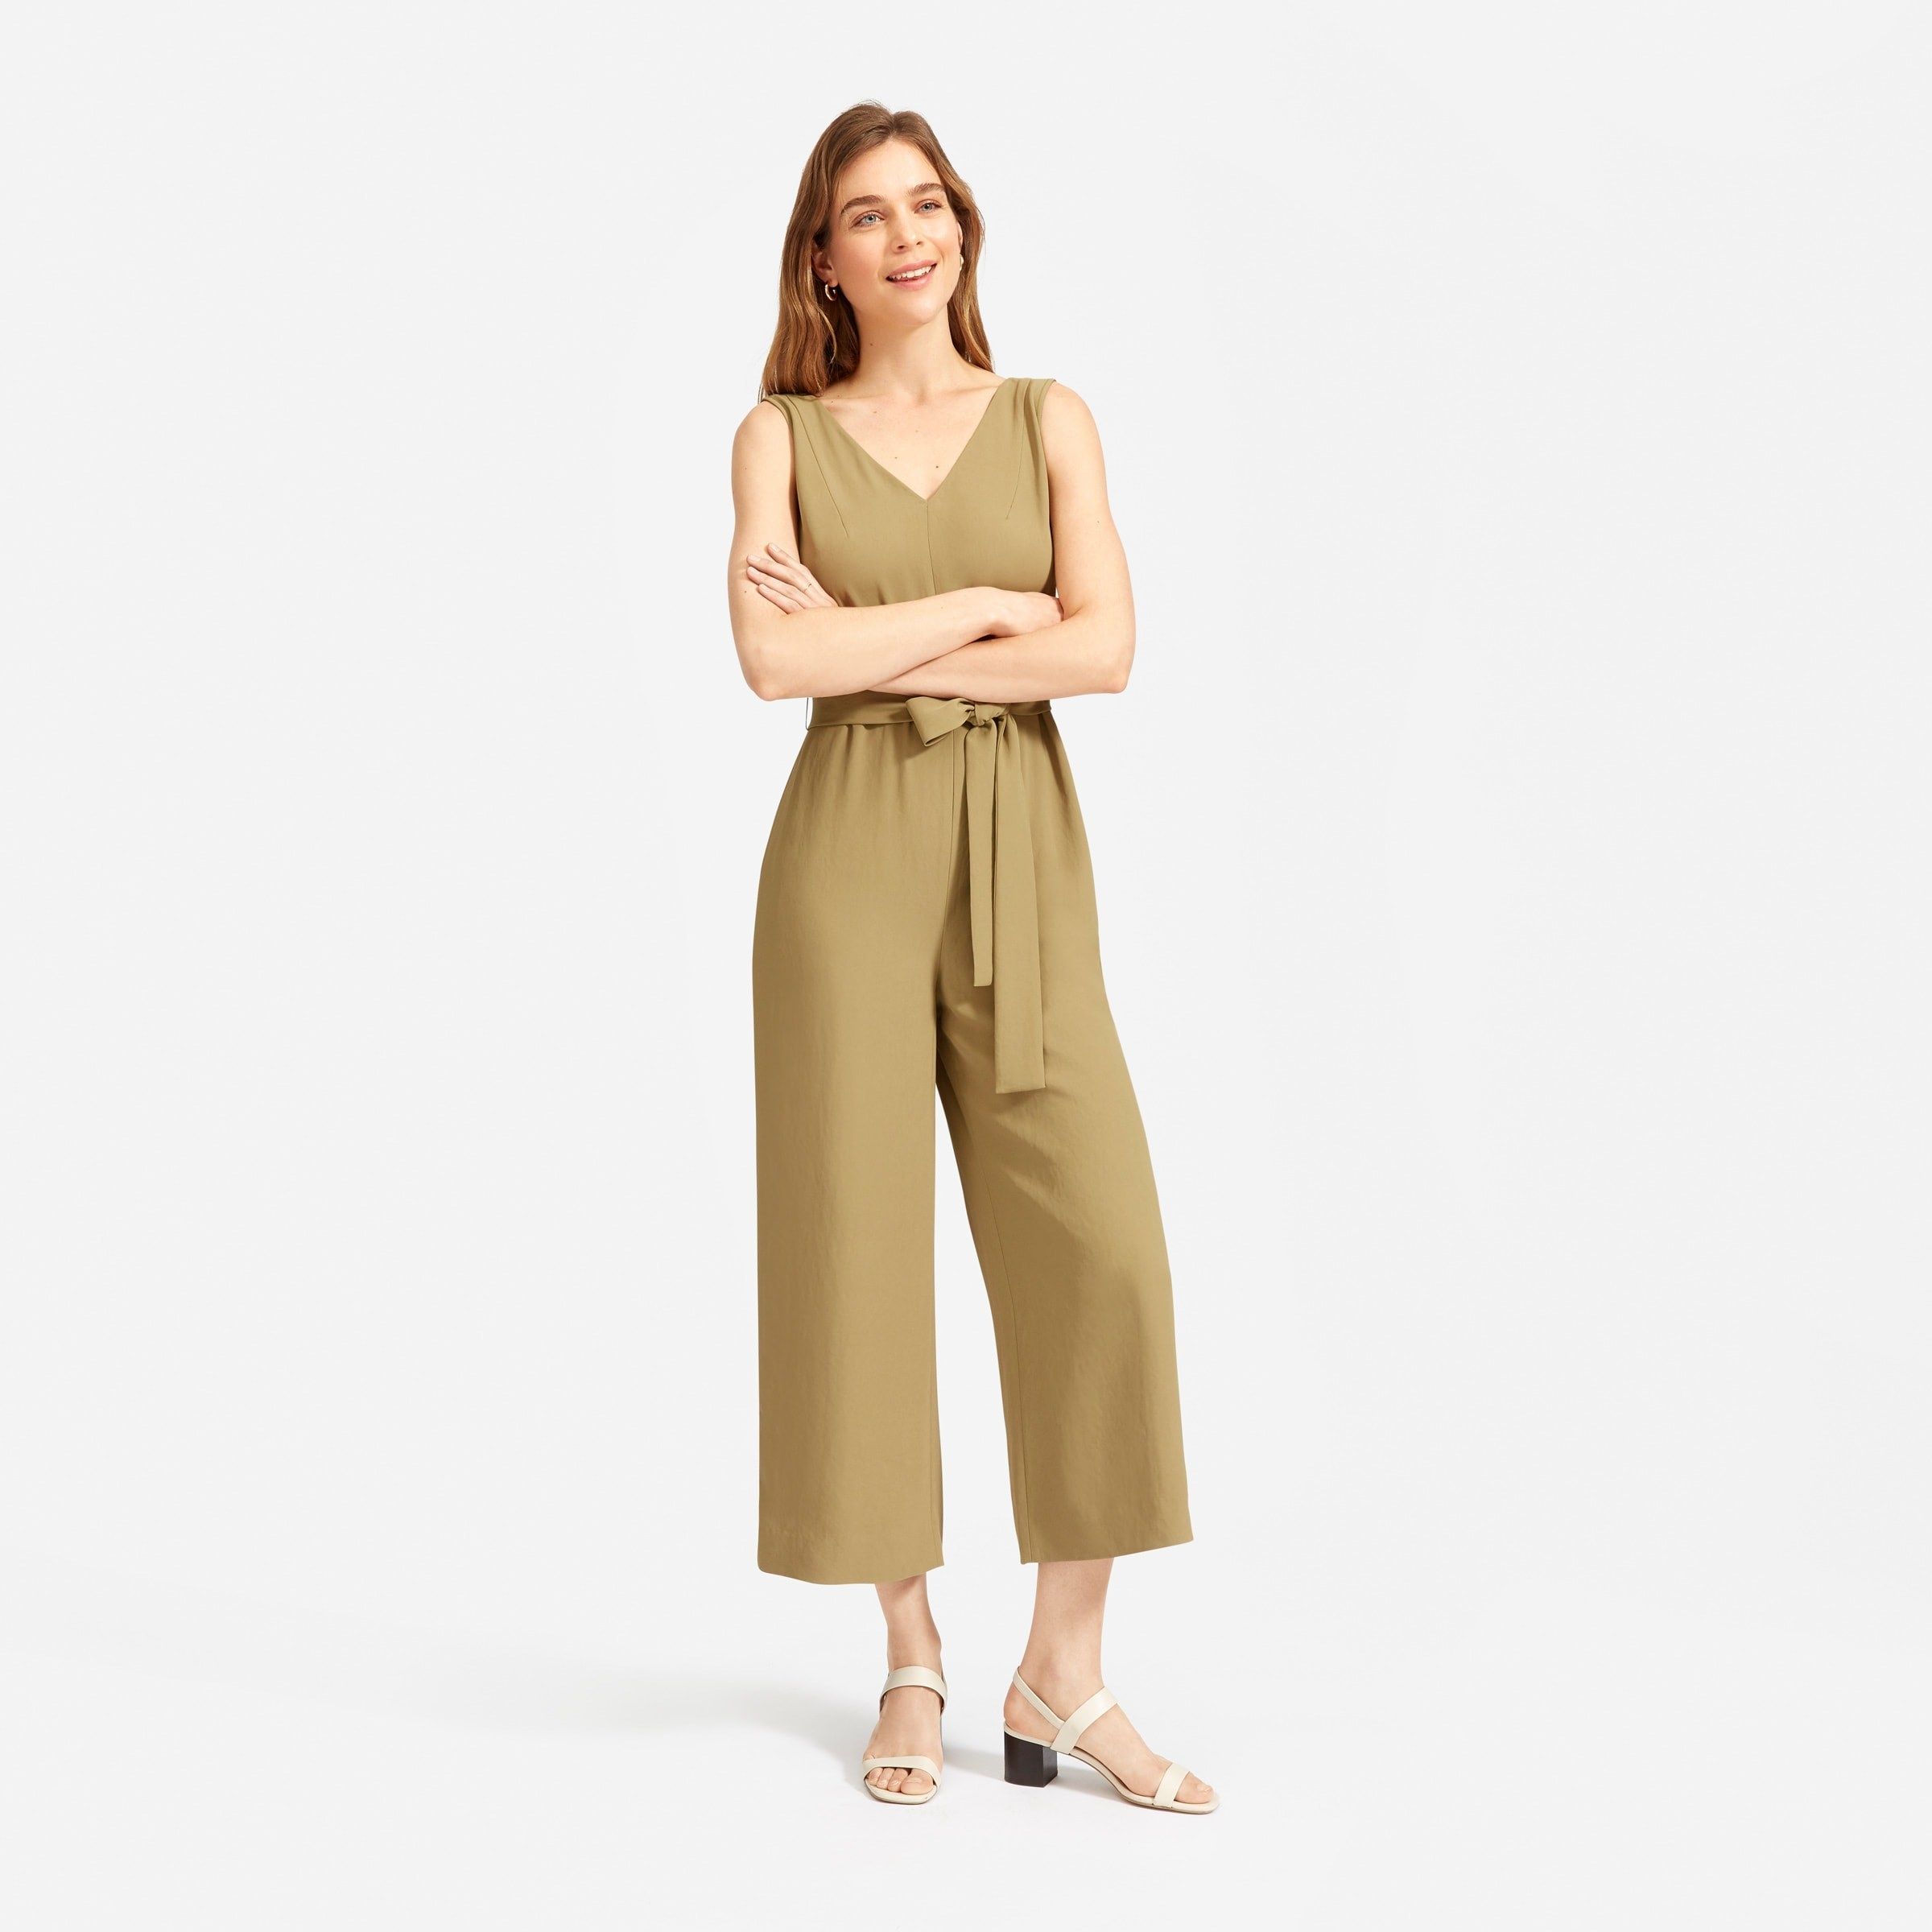 Model wearing the jumpsuit with a double-v neckline, wide legs, and a removable tie belt around the waist in olive